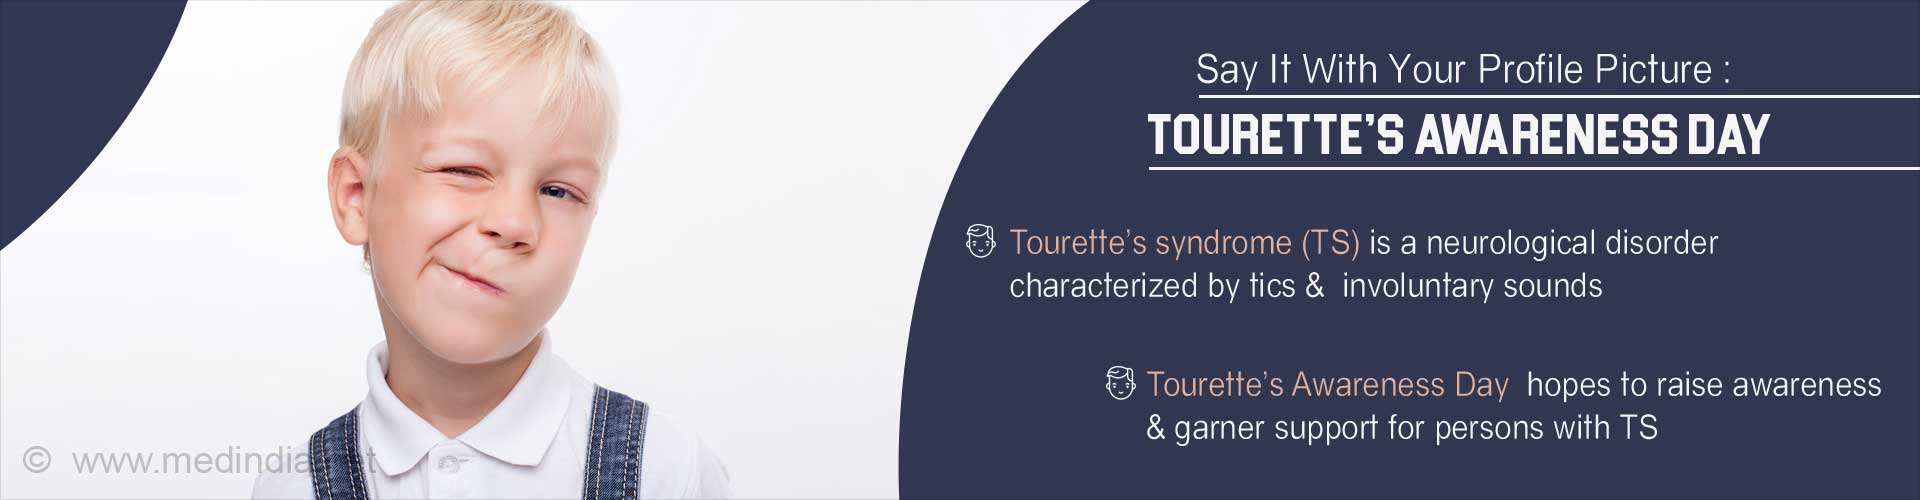 Tourette's Awareness Day 2017